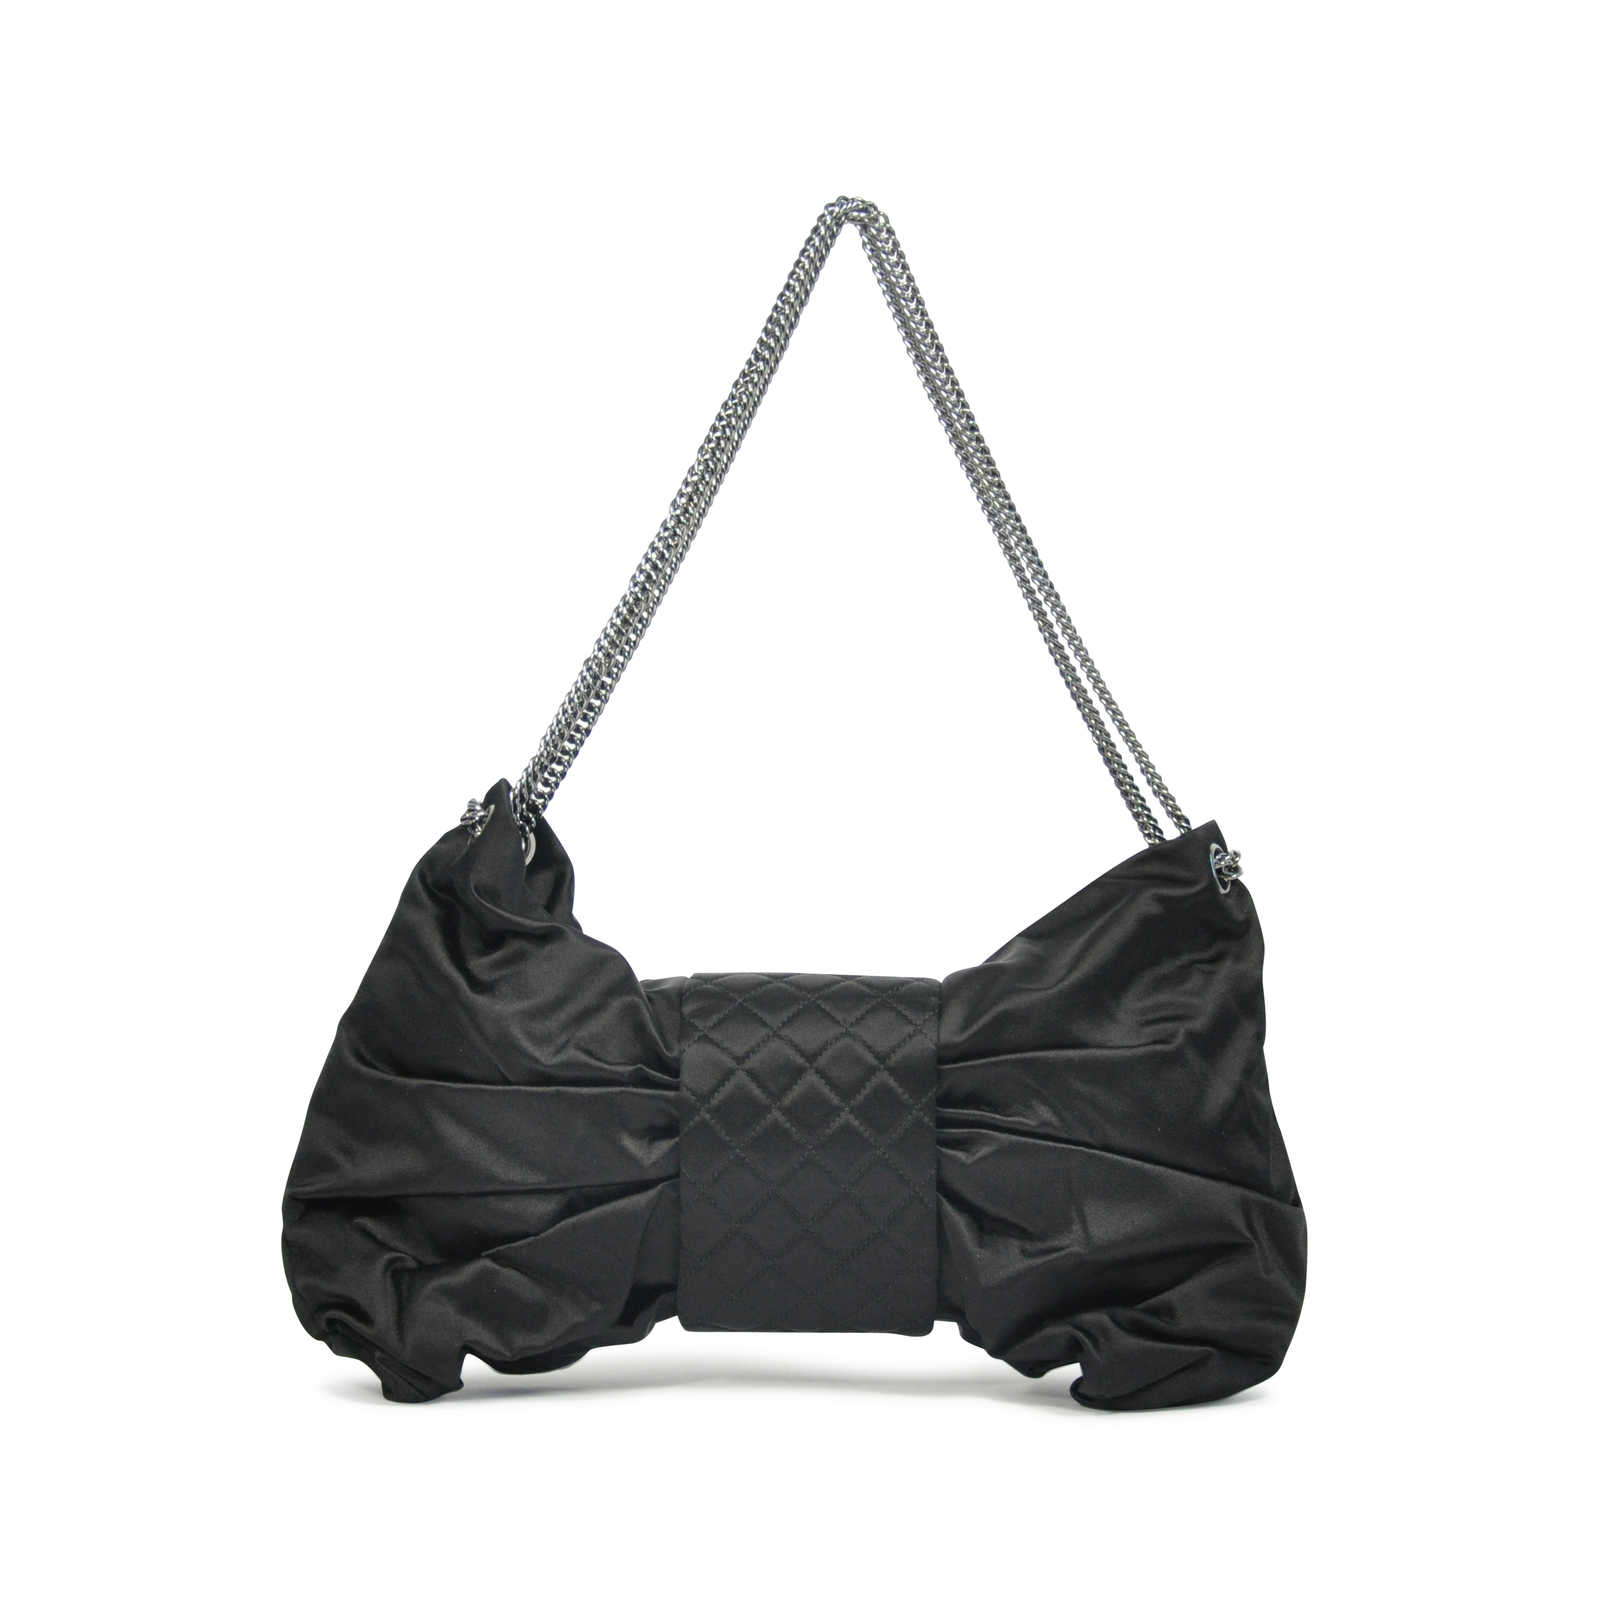 Authentic Pre Owned Chanel Satin Bow Bag Pss 136 00011 Thumbnail